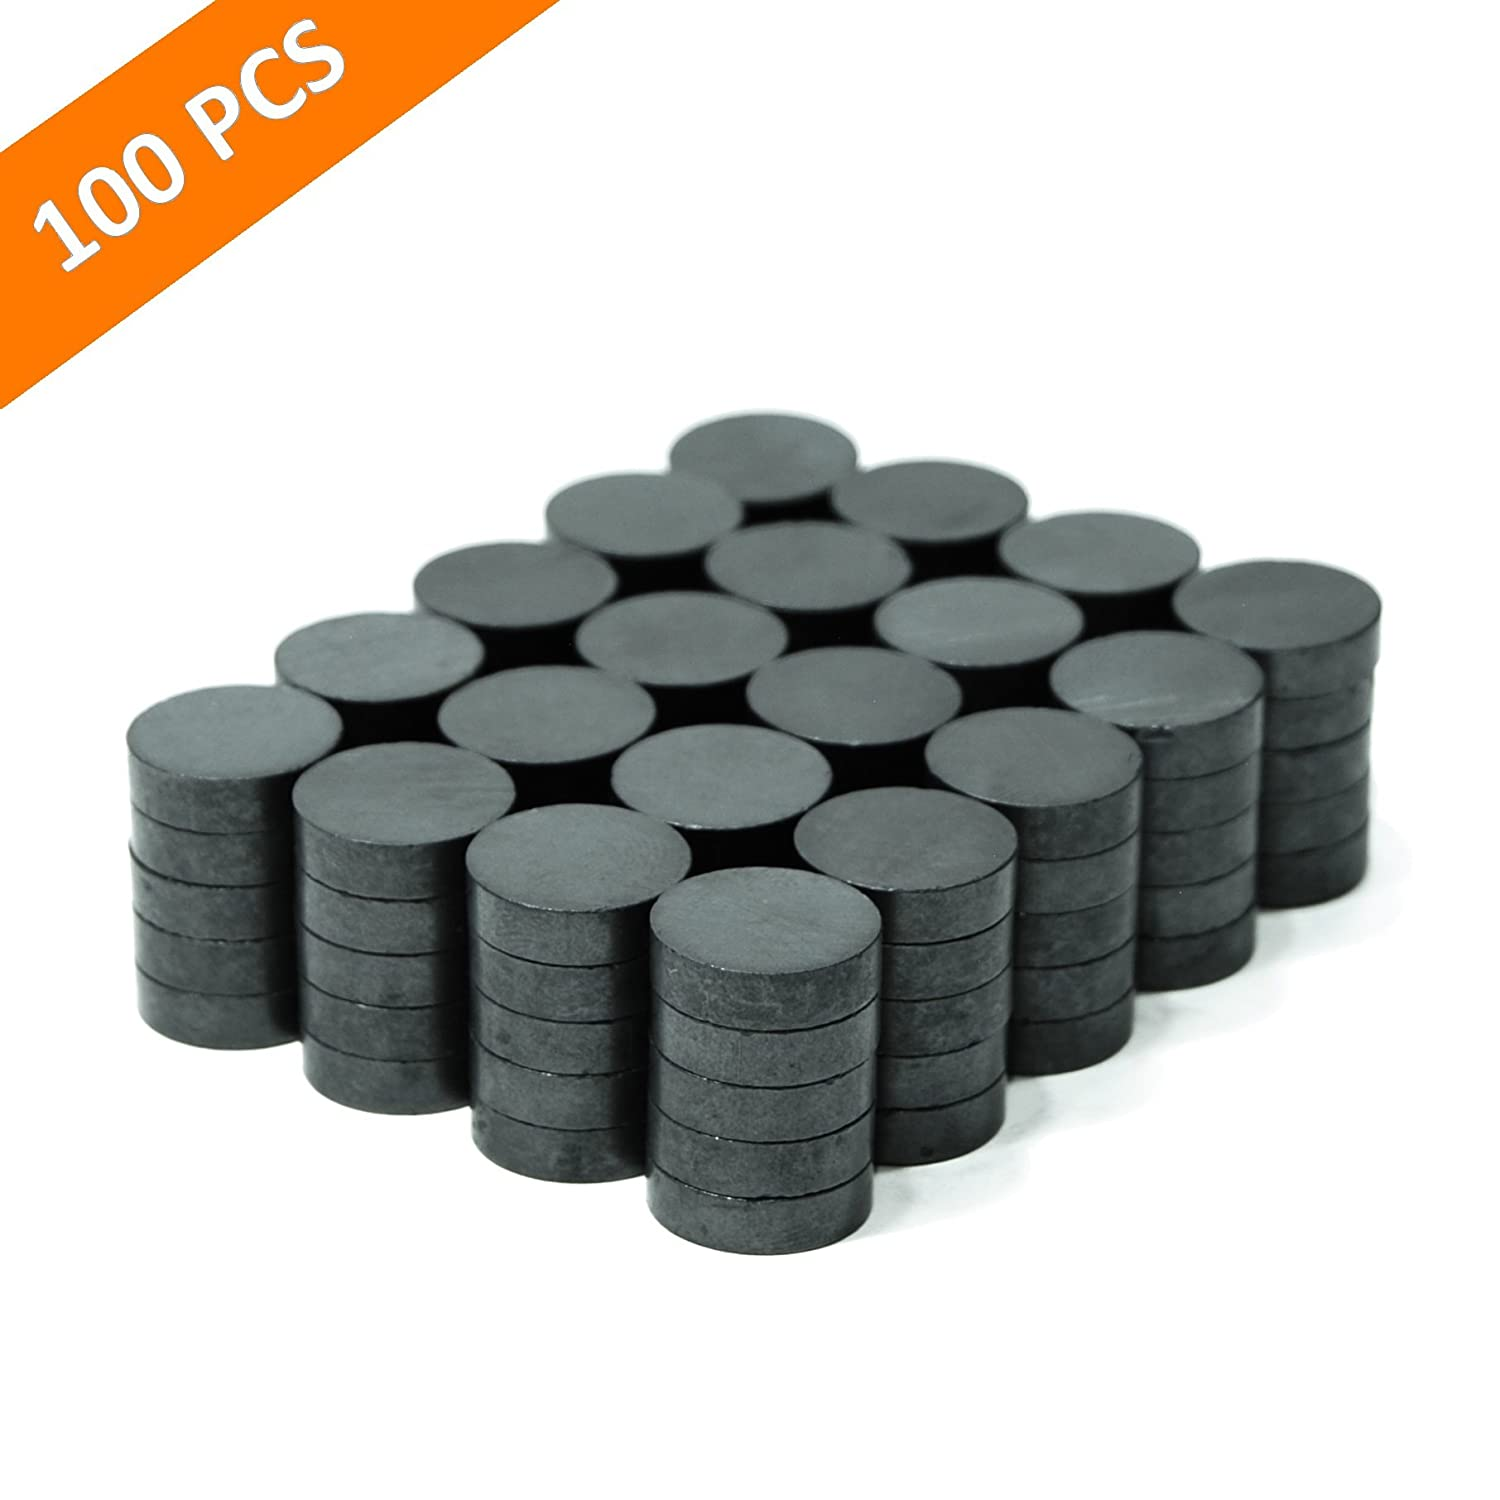 TAQTON Small Ceramic Craft Magnets - 100 pcs. 0.71' x 0.20' Thick. Industrial Strength Craft Magnets, Ferrite Disc Magnets. TAQTON Magnets